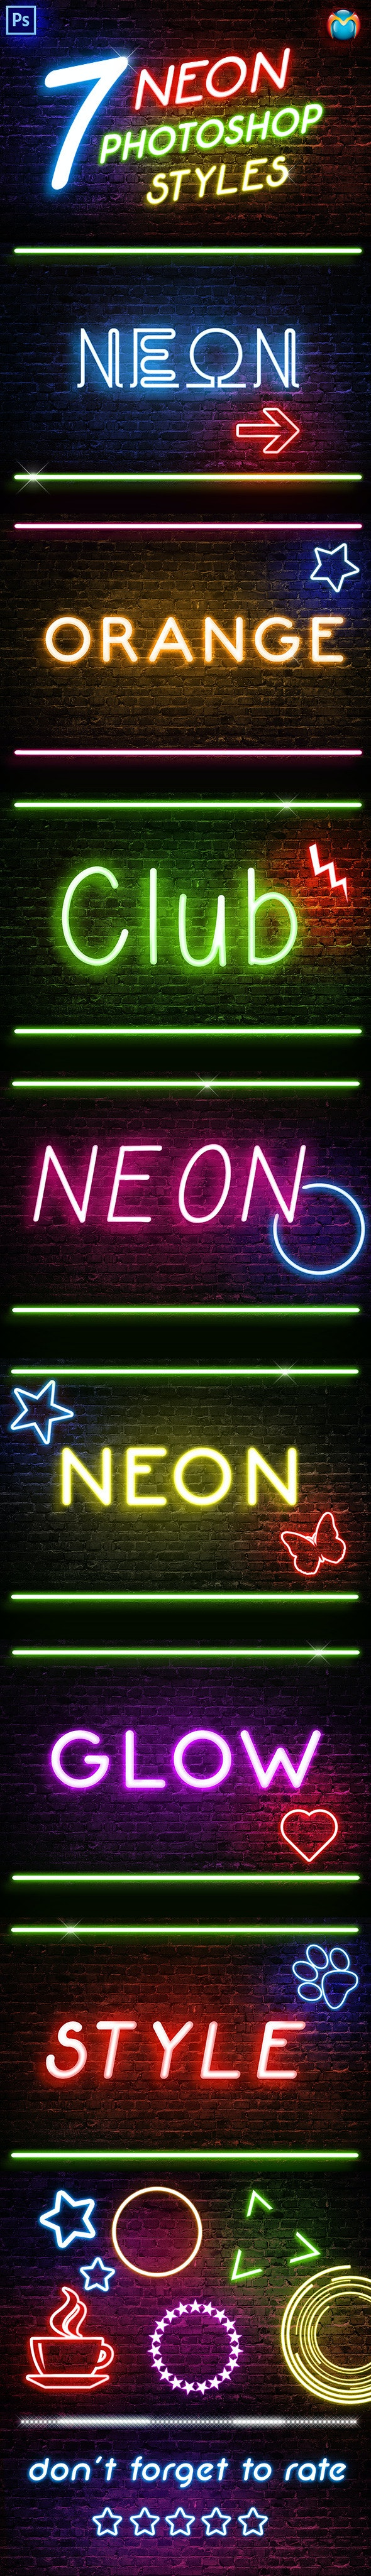 Neon Photoshop Styles - Text Effects Styles